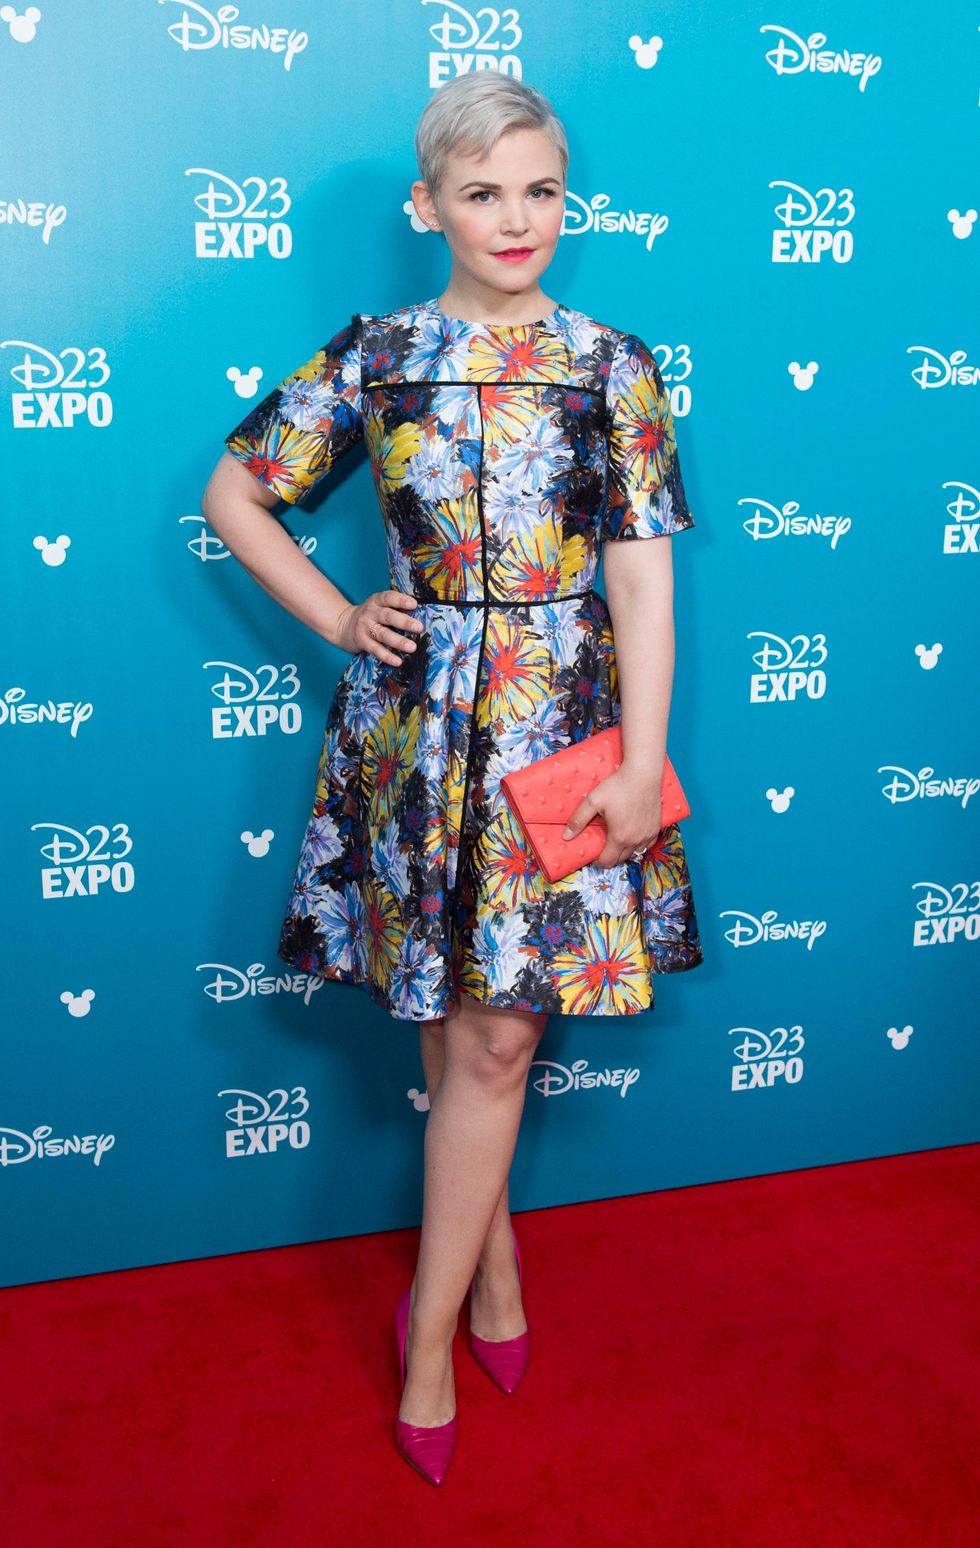 Ginnifer Goodwin in a short floral dress and pink heels.